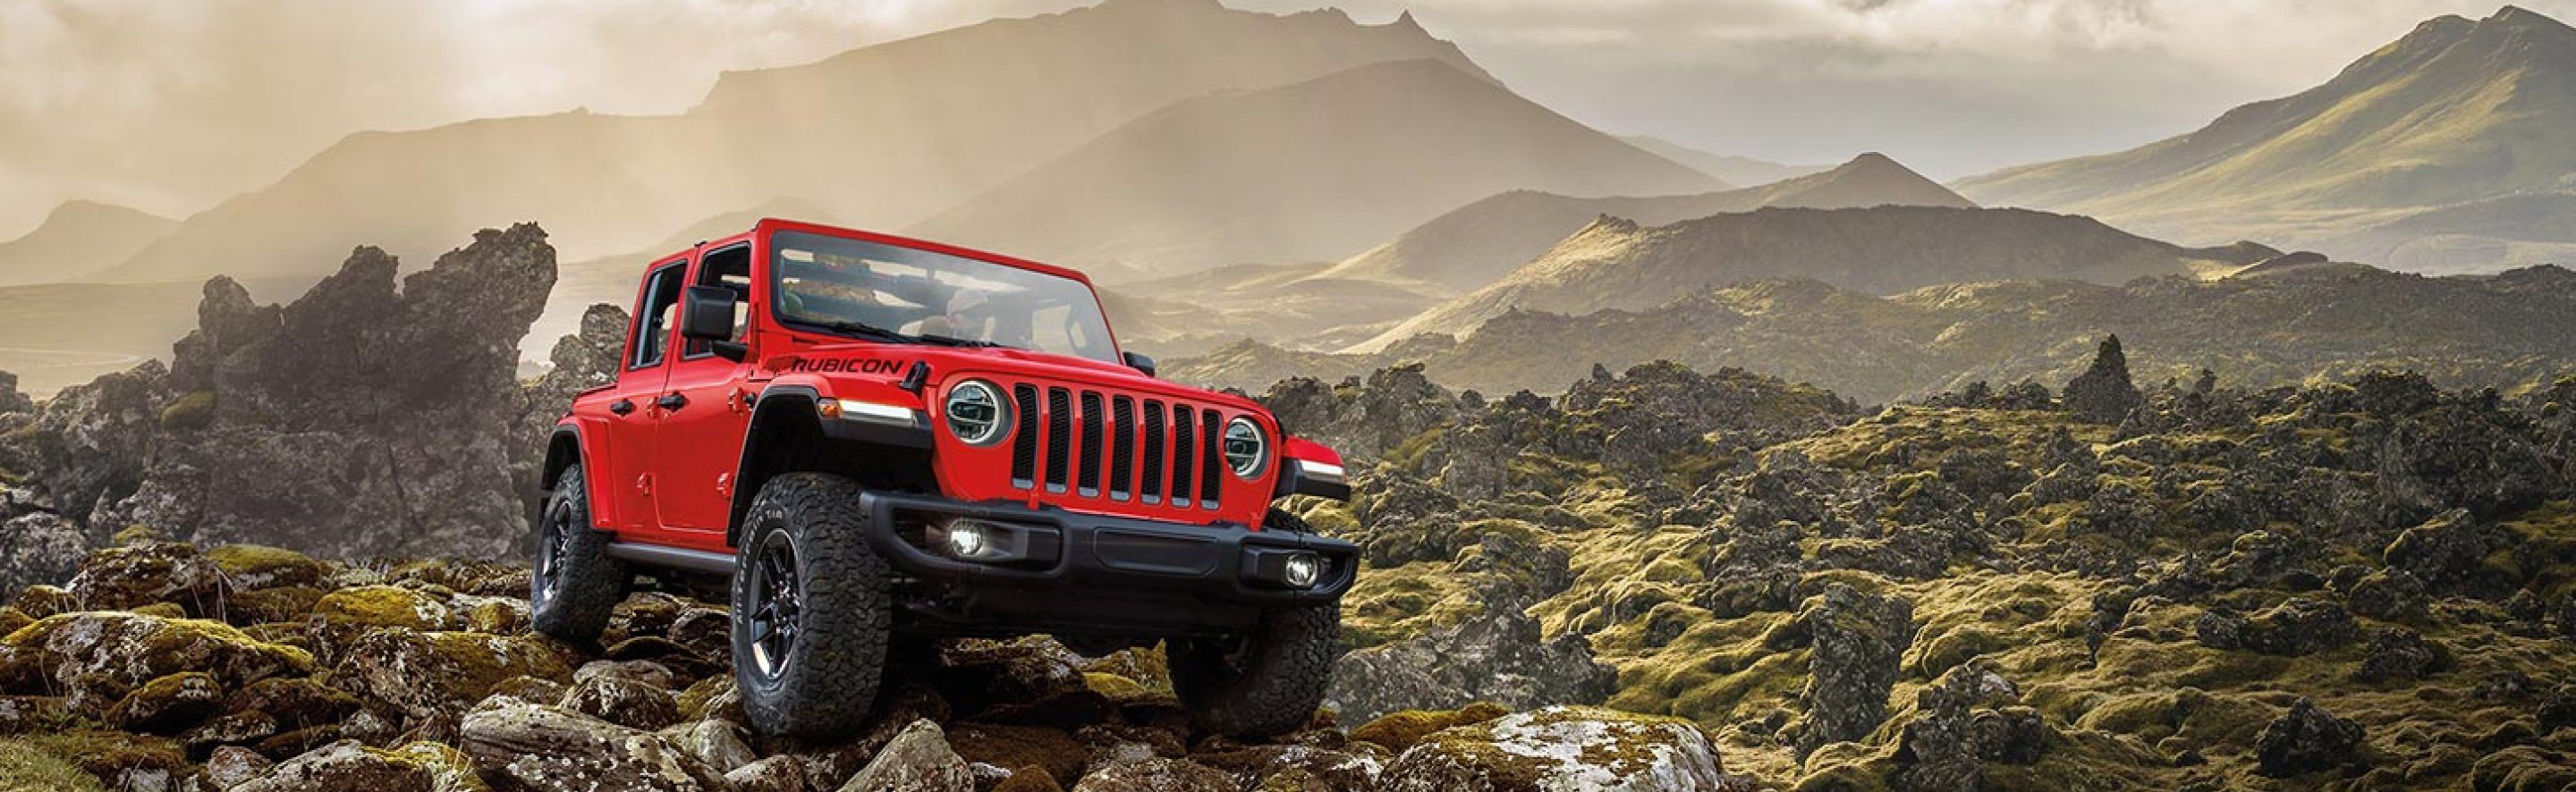 red 2020 jeep wrangler parked on rocks on a mountain